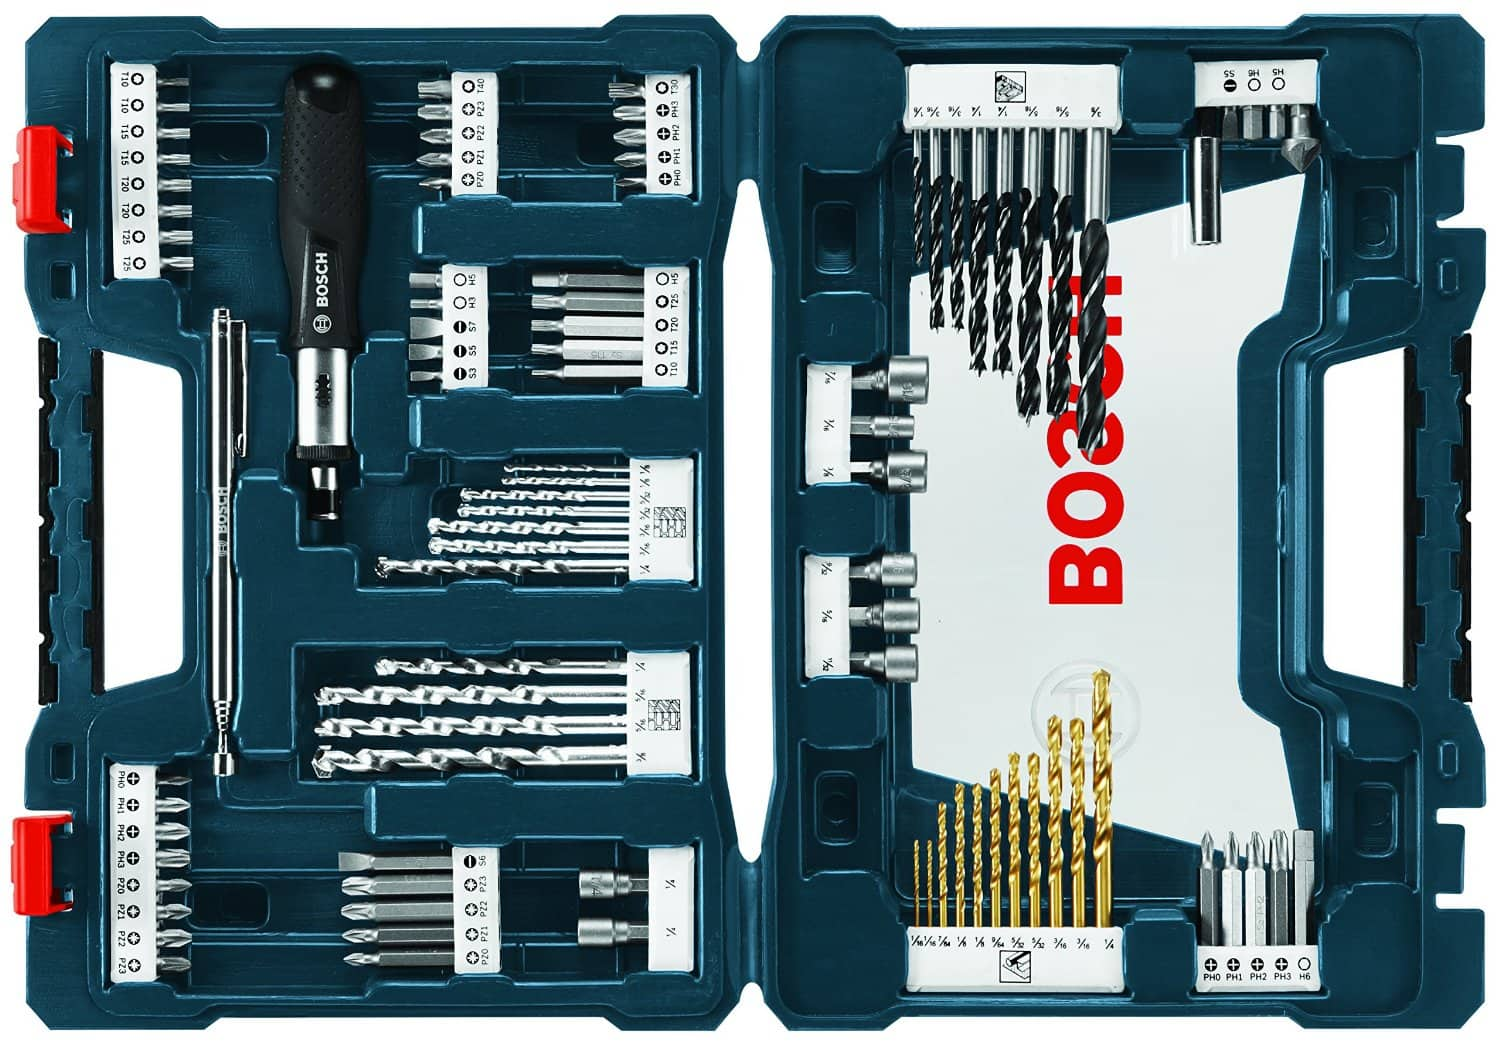 Bosch MS4091 Drill and Drive Set, 91 Piece $23.34 @ Amazon